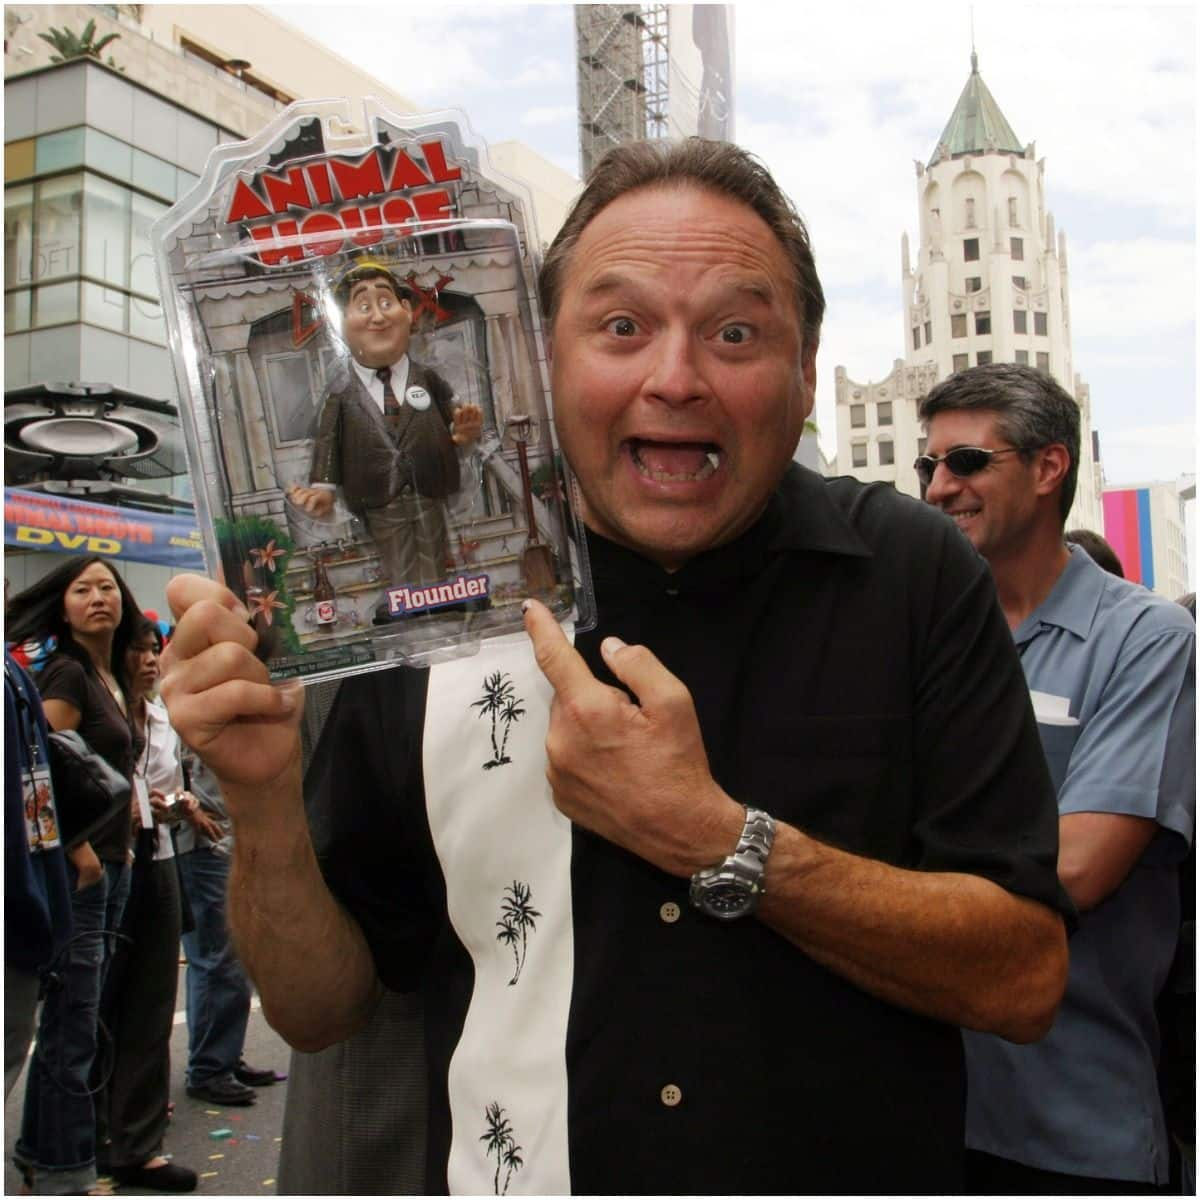 what is the net worth of Stephen Furst